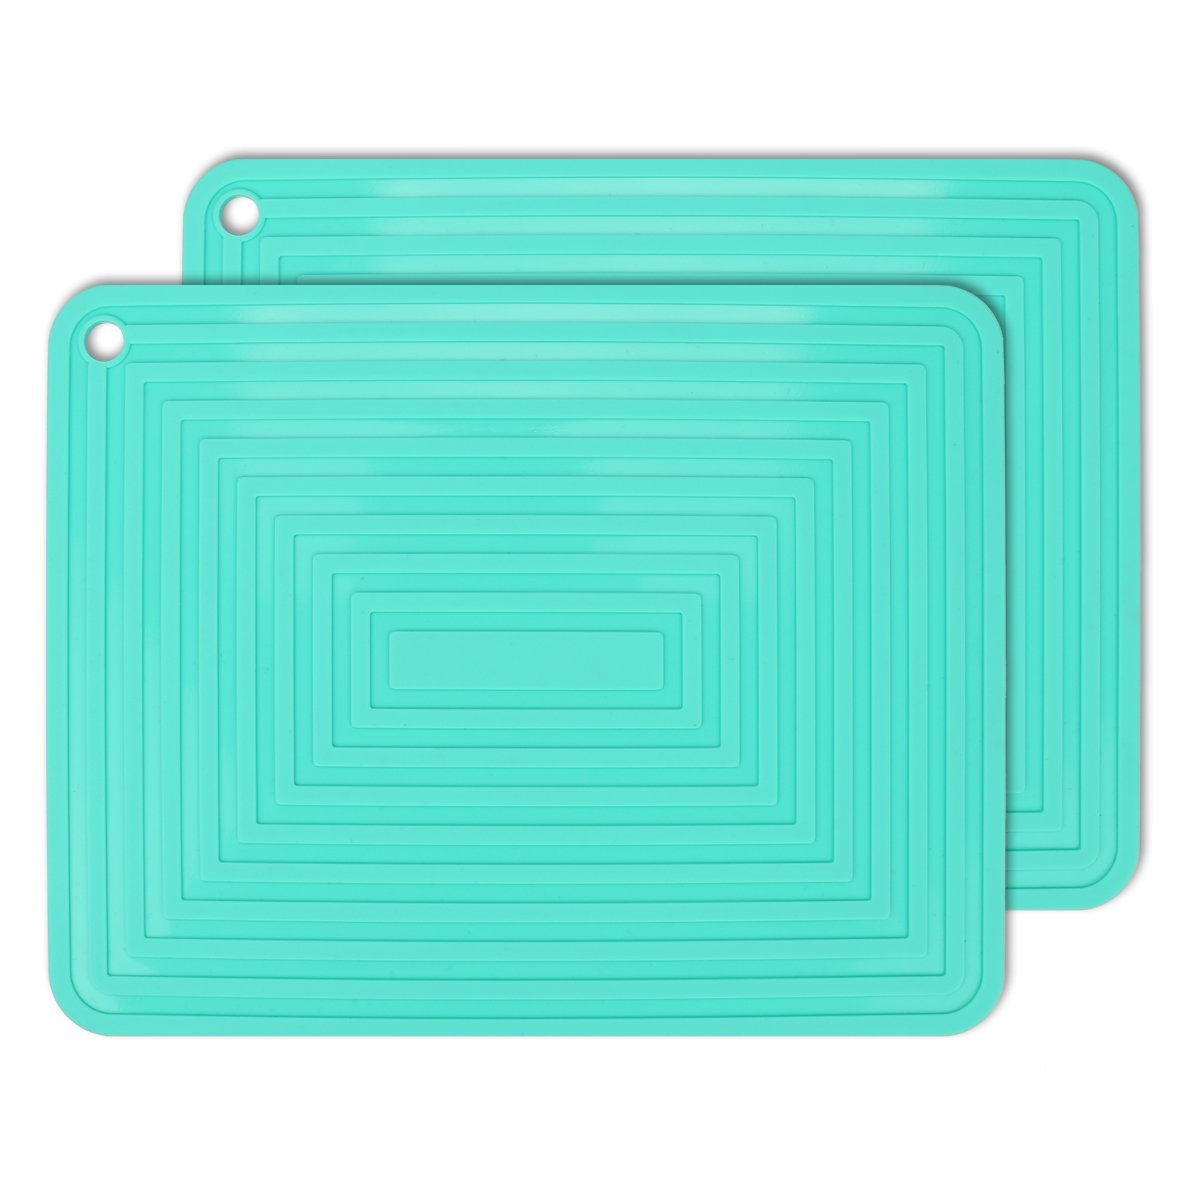 2 Pack,Silicone Trivet Mats/Hot Pads,Pot Holder,9